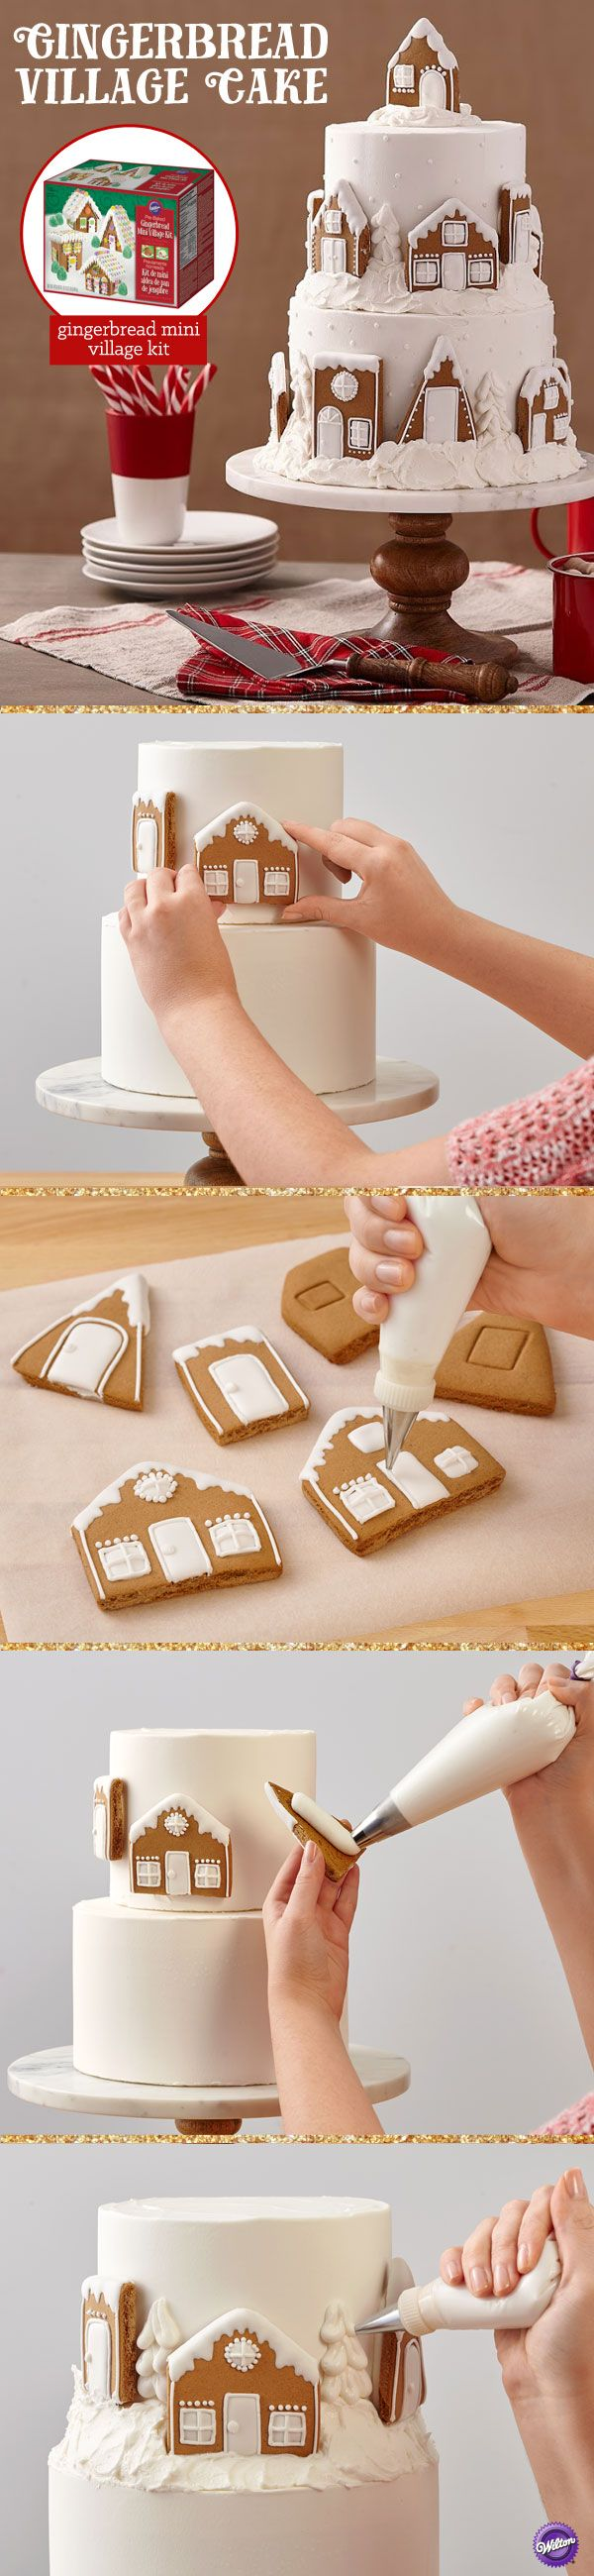 Gingerbread kits are not just for the holidays! Here, the cookies from the Wilto...